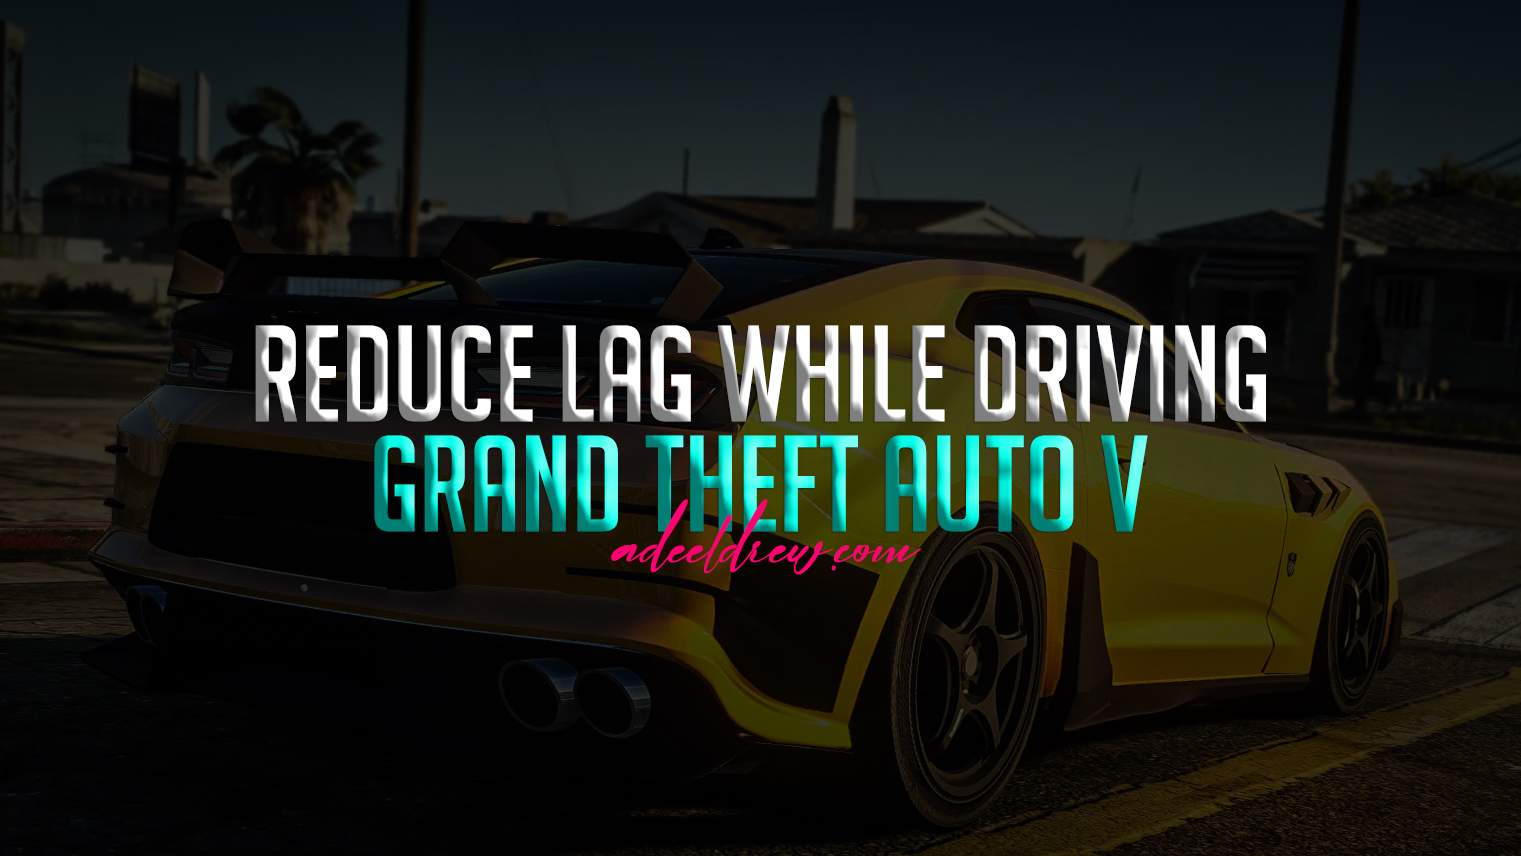 - reduce gta v lag how to decrease lag in gta 5 how fix gta 5 lag how to stop gta 5 from lagging gta 5 lag how to reduce gta 5 lag how to reduce gta v lag reduce lag in gta 5 how to fix lag in gta 5 how to stop lag in gta 5 how to reduce lag in gta 5 online how to reduce lag in gta online how to stop lag in gta 5 online how to reduce lag in gta 5 how to reduce lag on gta 5 xbox one how to reduce lag in gta 5 windows 10 reduce lag gta v pc how to reduce lag on gta 5 pc how to fix lag in gta 5 low end pc how to fix lag gta 5 windows 10 how to fix gta 5 lag xbox one how to fix gta 5 crashing how to fix gta 5 installation problem ps4 how to fix gta 5 crashing on loading screen how to fix gta 5 corrupted data ps4 how to fix gta 5 frame drops how to fix gta 5 screen size how to fix gta 5 not launching pc how to fix gta 5 lag how to fix gta 5 audio how to fix gta 5 activation required how to fix gta 5 altered version of the game how to fix gta 5 activation error how to fix gta 5 activation code how to fix gta 5 application error how to fix gta v after update how to fix gta v anti aliasing how to fix gta 5 not launching how to fix gta 5 stuttering how to fix gta 5 rockstar servers unavailable how to fix gta 5 infinite loading screen how to fix gta 5 black screen pc how to fix gta 5 black screen ps4 how to fix gta 5 blurry how to fix gta 5 black screen ps3 how to fix gta 5 bink2w64.dll how to fix gta 5 bug how to fix gta v black textures how to fix gta 5 key bindings how to fix gta 5 tieup_0014_chk_b gta v tieup_0014_chk_b error fix tieup_0014_chk_b gta v error how to fix gta 5 corrupt game data how to fix gta 5 crashing on startup how to fix gta 5 corrupted data pc how to fix gta 5 crashing with mods how to fix gta 5 crashing xbox one how to fix gta 5 disc unreadable error ps4 how to fix gta 5 display calibration how to fix gta 5 disc unreadable error how to fix gta 5 disappearing textures how to fix gta 5 disconnected from game session how to fix gta 5 download problem how